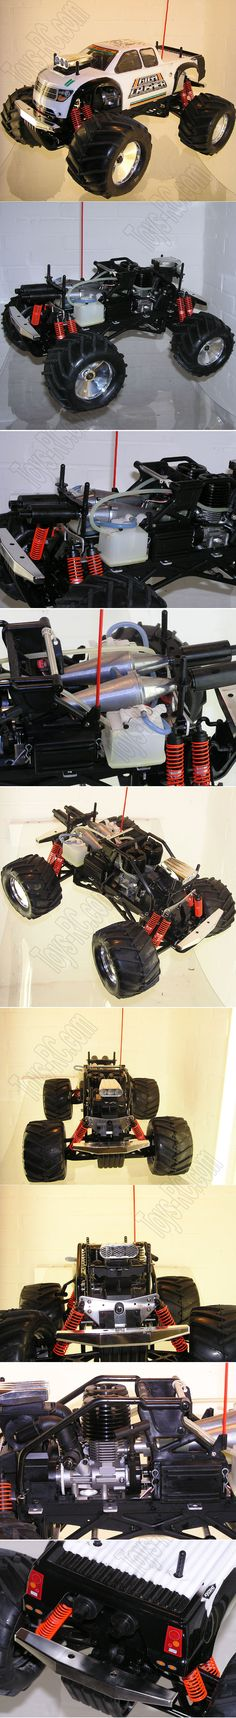 Kyosho Giga Crusher 1/8 scale Twin engine Vintage monster Truck http://www.toys-rc.com/kyosho-giga-crusher-18-scale-twin-engine-vintage-monster-truck-p-200.html